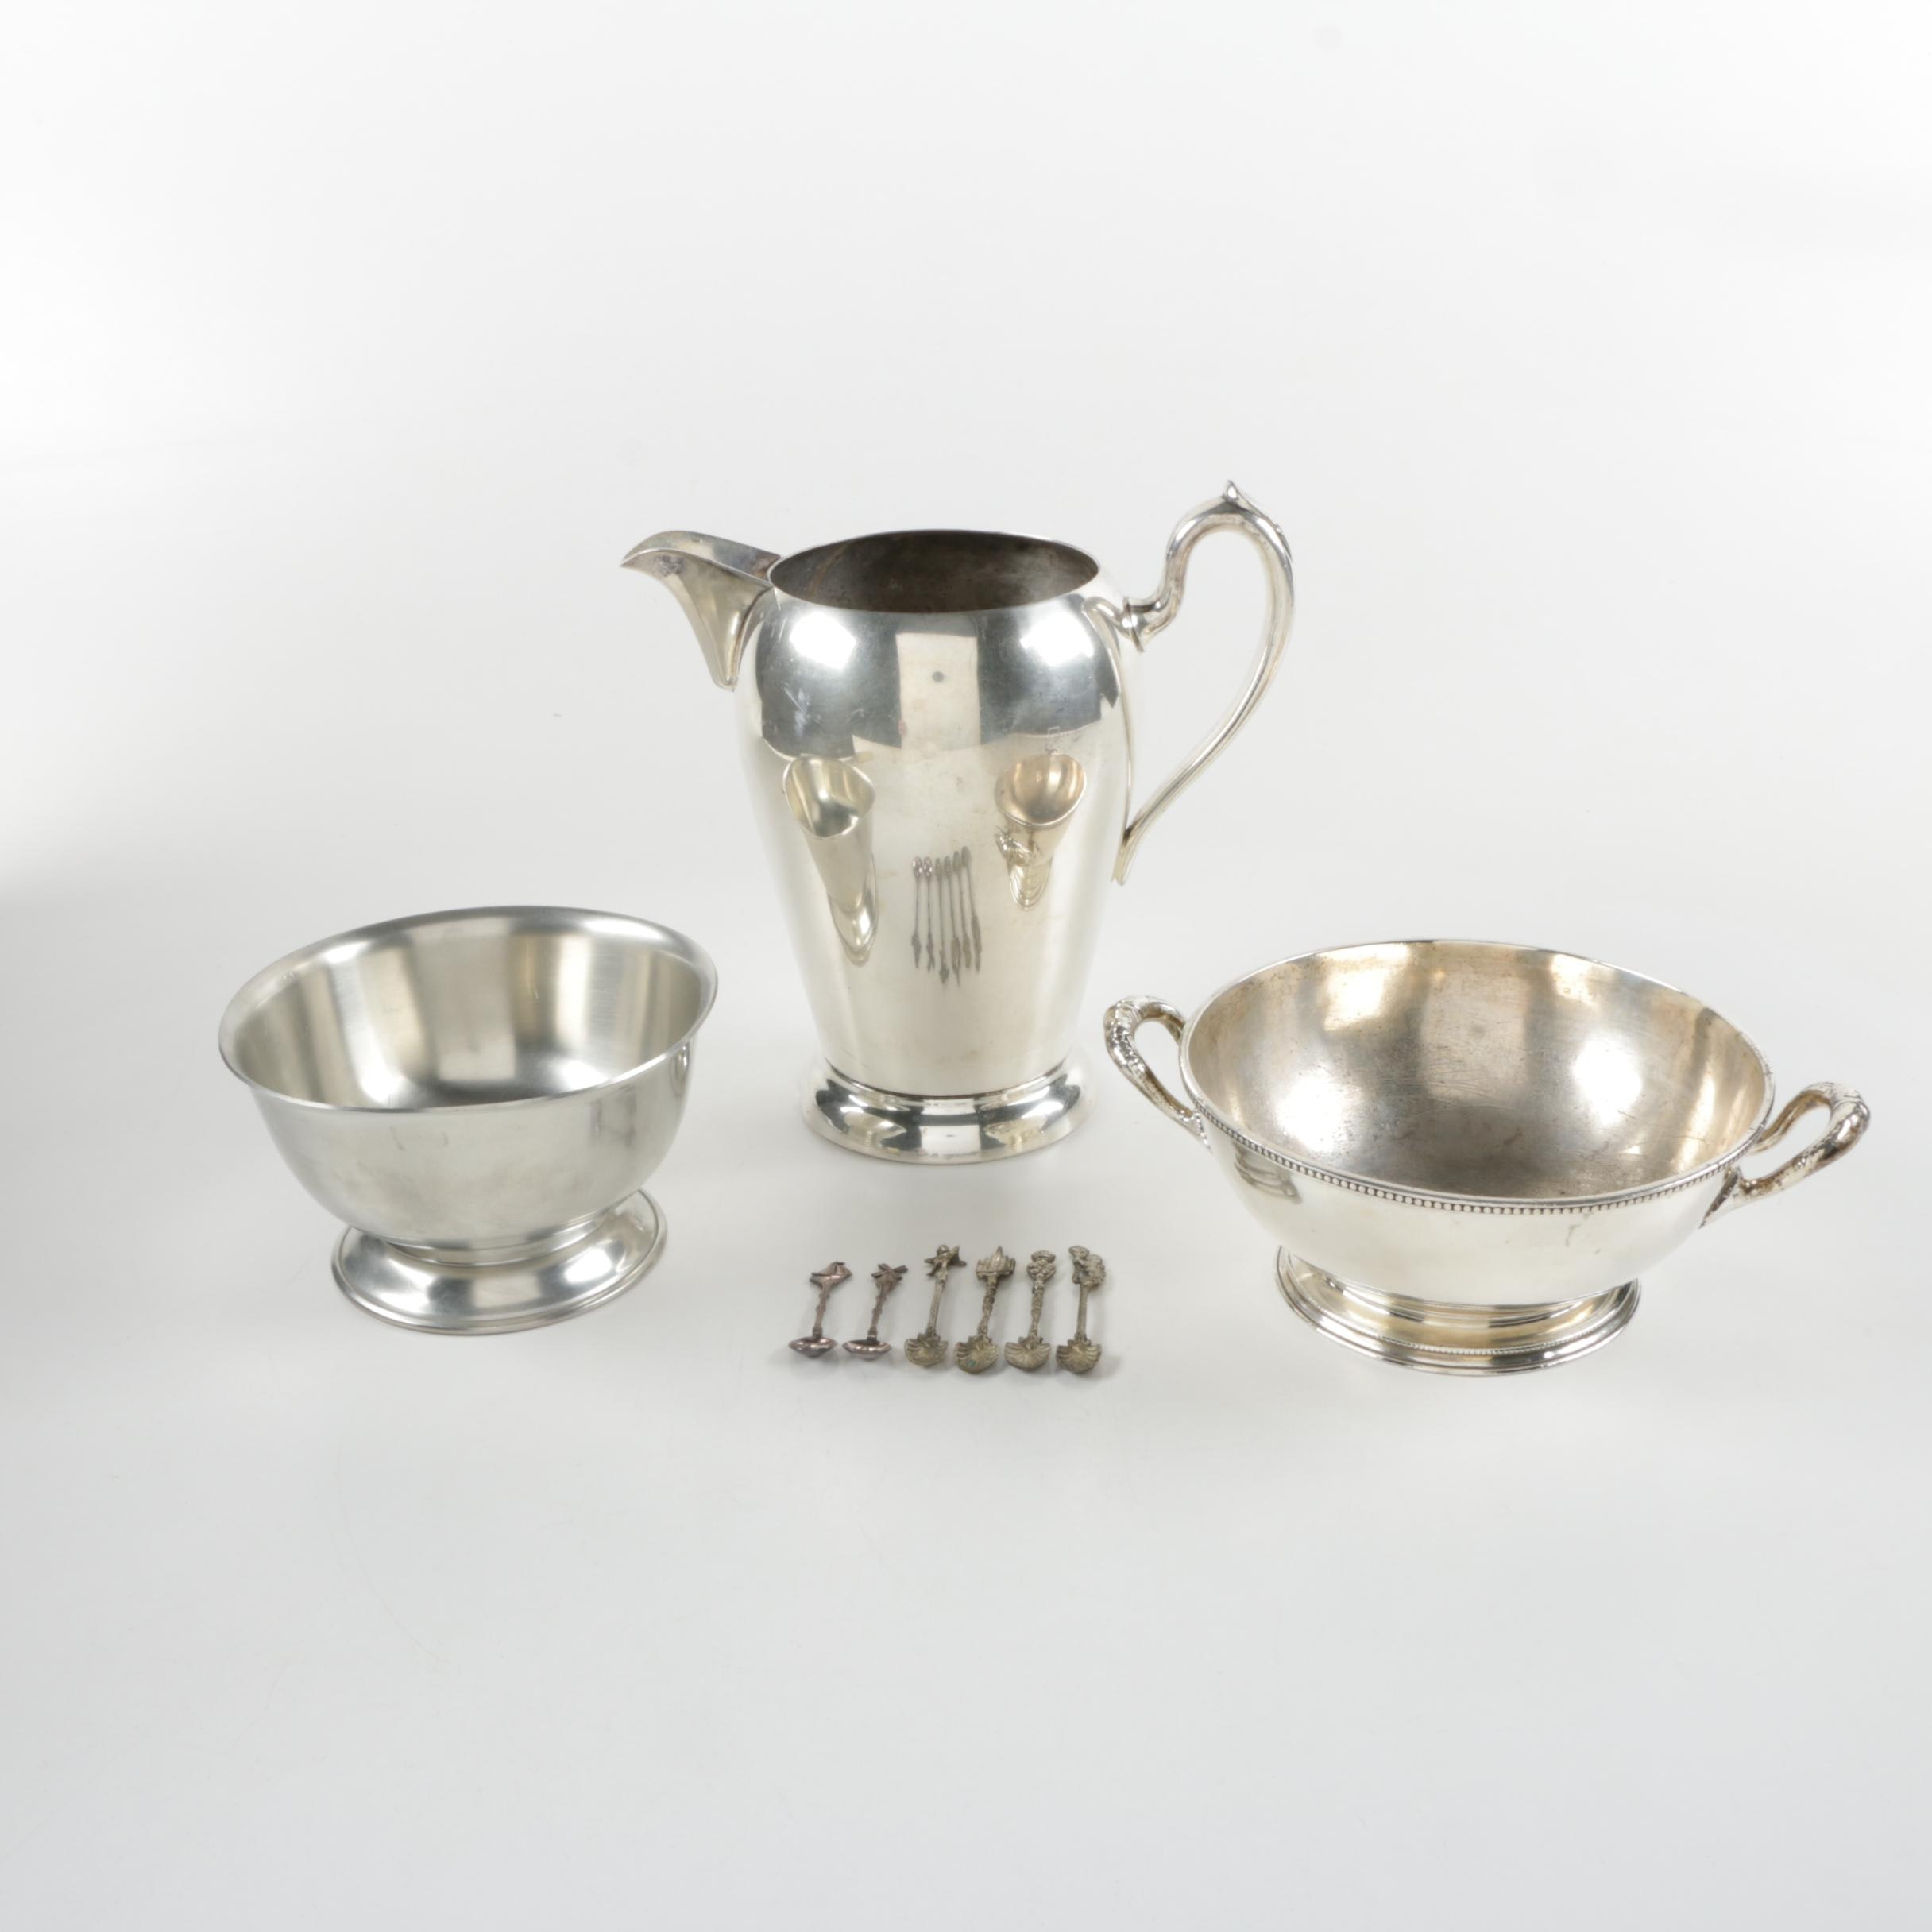 Silver Plate Tableware Featuring Reed & Barton